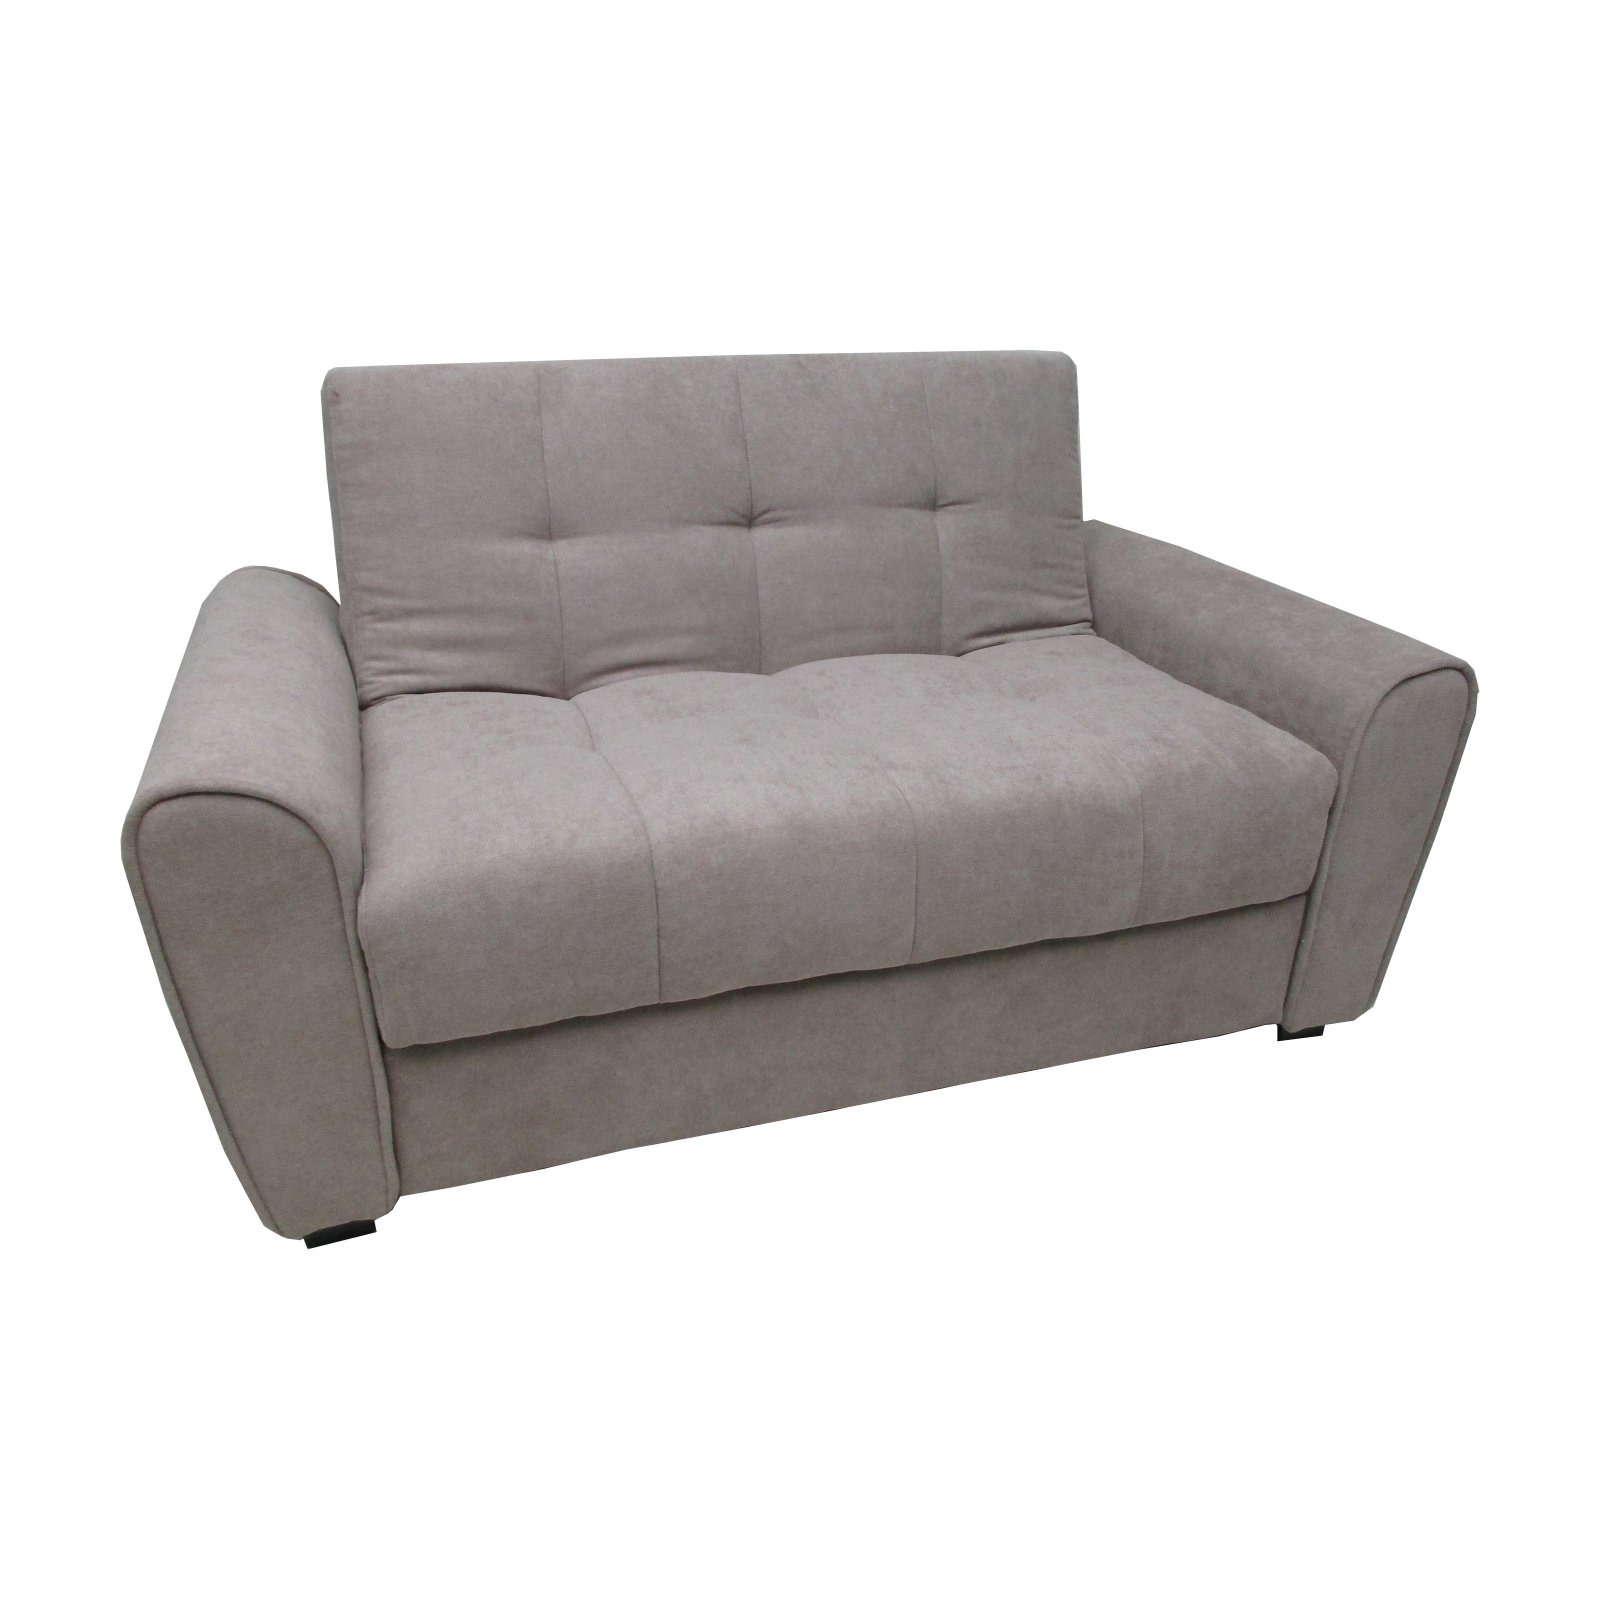 Backyard Expressions Sofa Bed With Storage Compartment Walmart Com